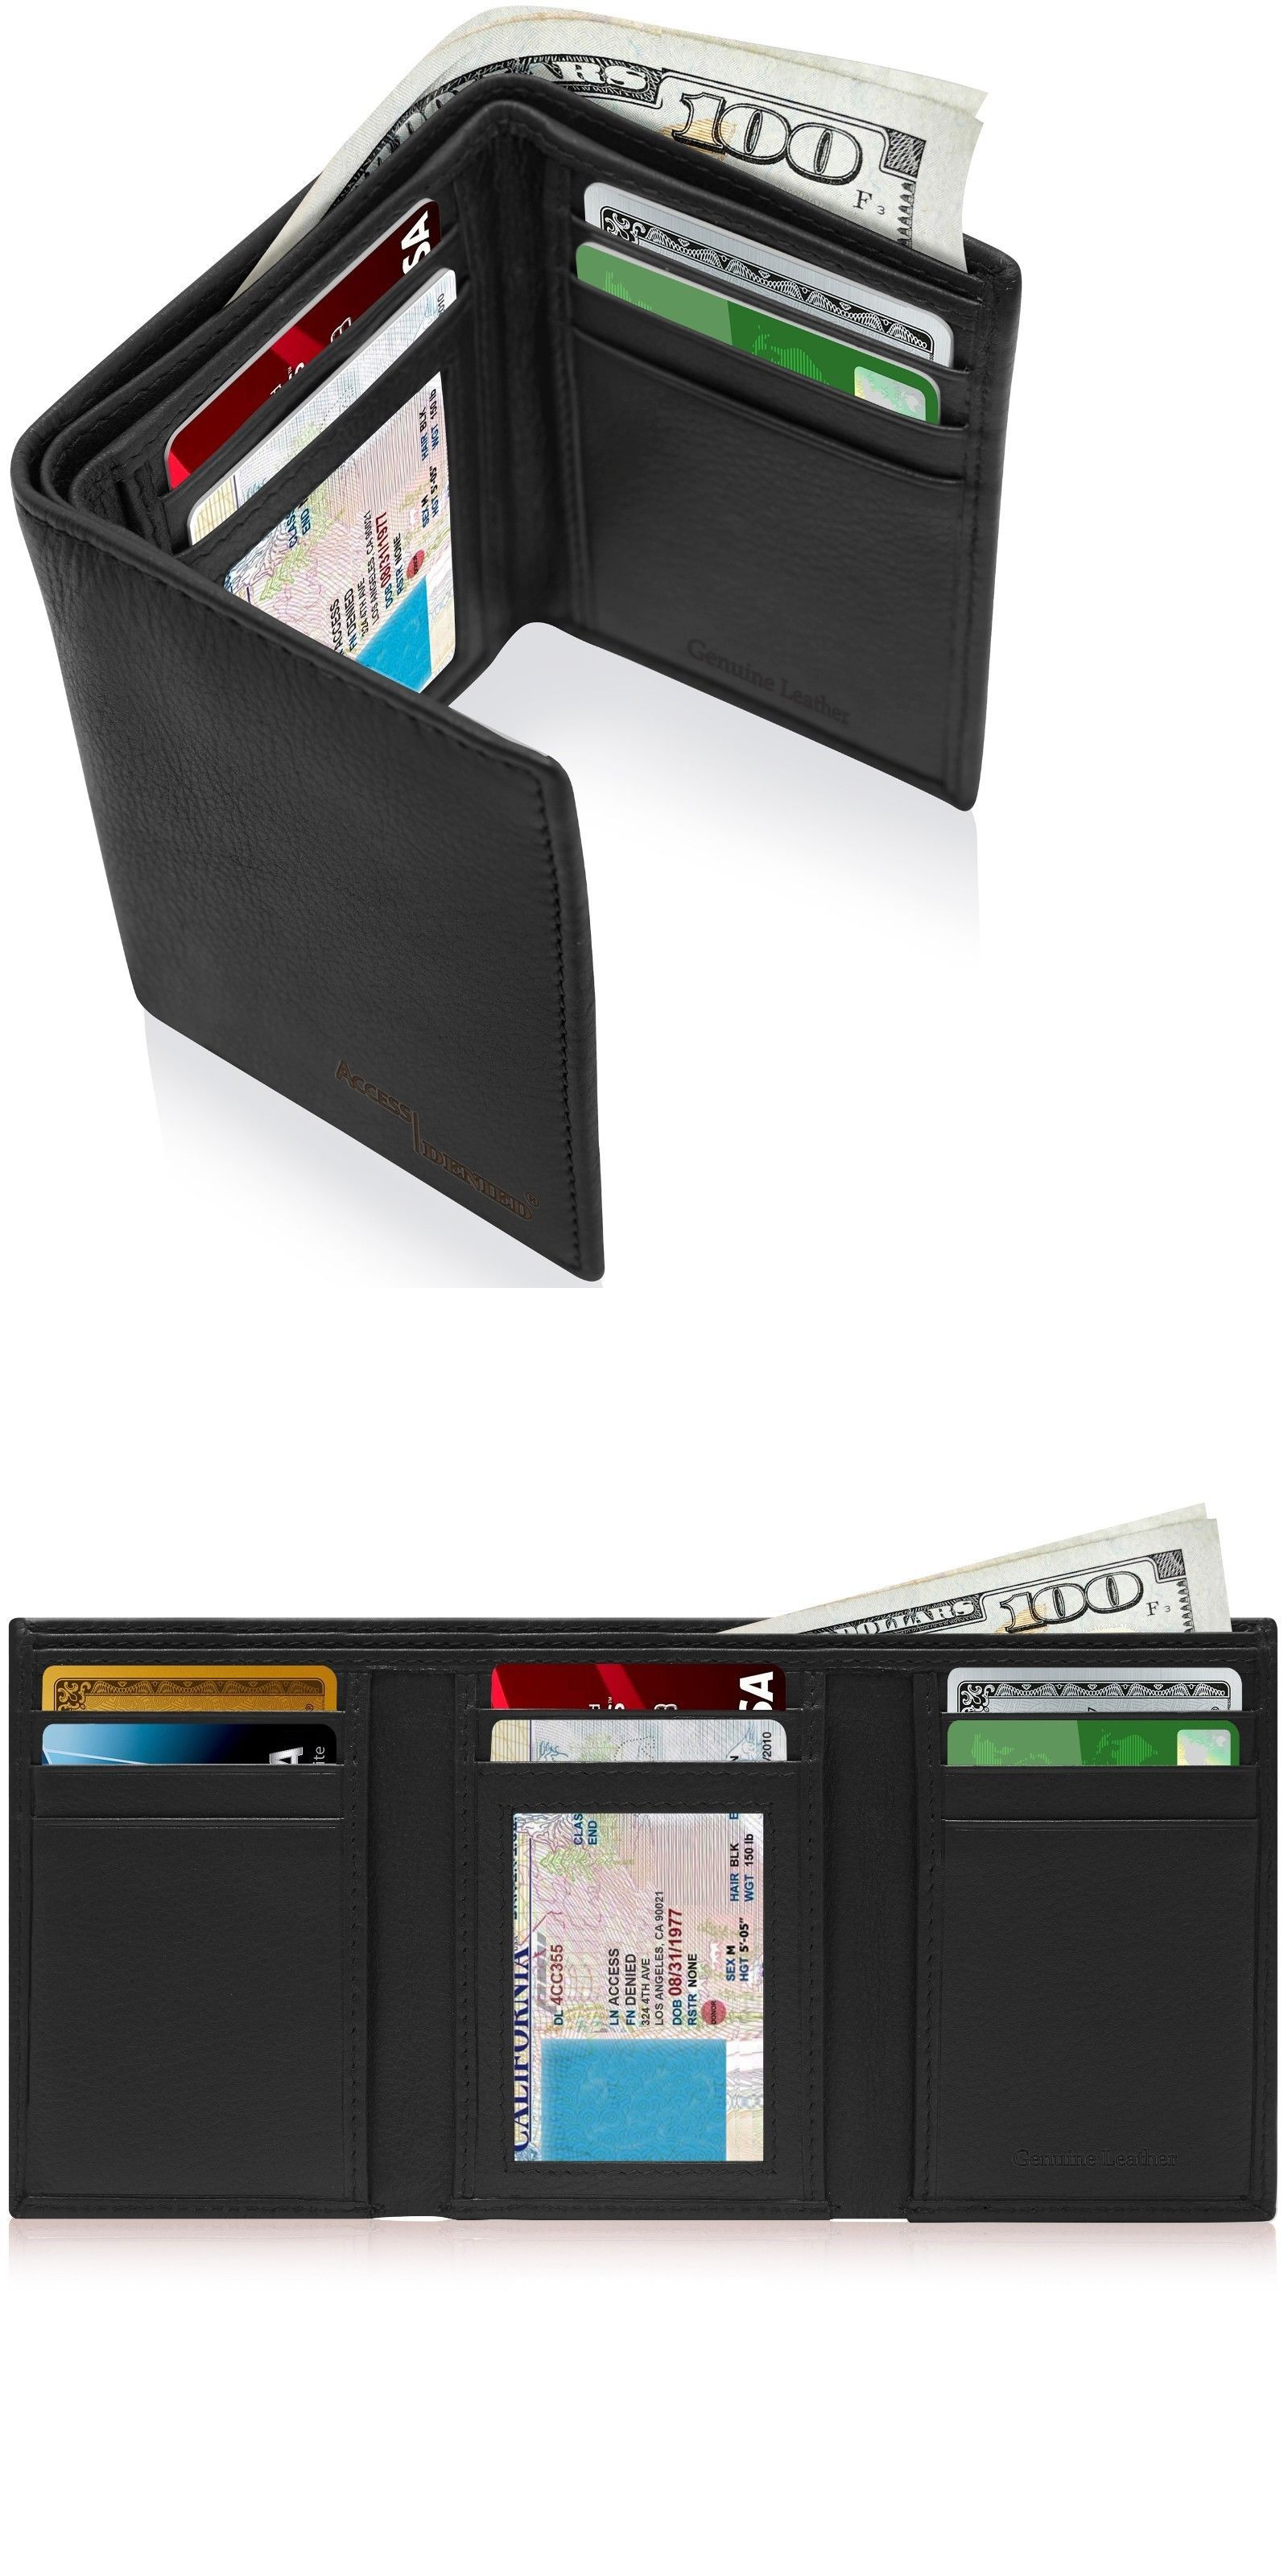 a913d0be17ab ID and Document Holders 169271  Genuine Leather Wallets For Men Trifold  Mens Wallet With Id Window Rfid Blocking -  BUY IT NOW ONLY   18.99 on   eBay ...